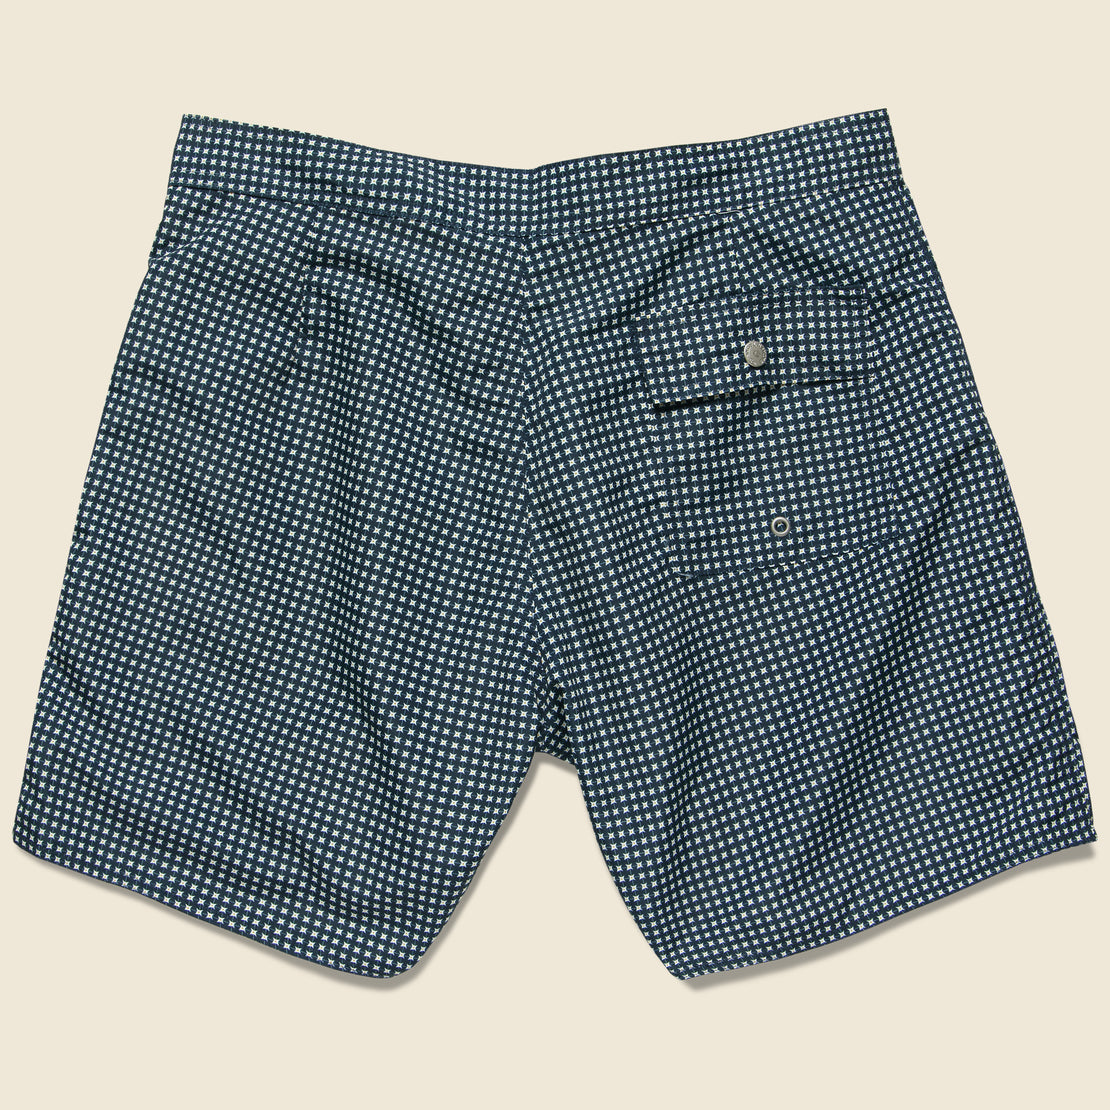 Geo Blue Boardshort - Blue/White